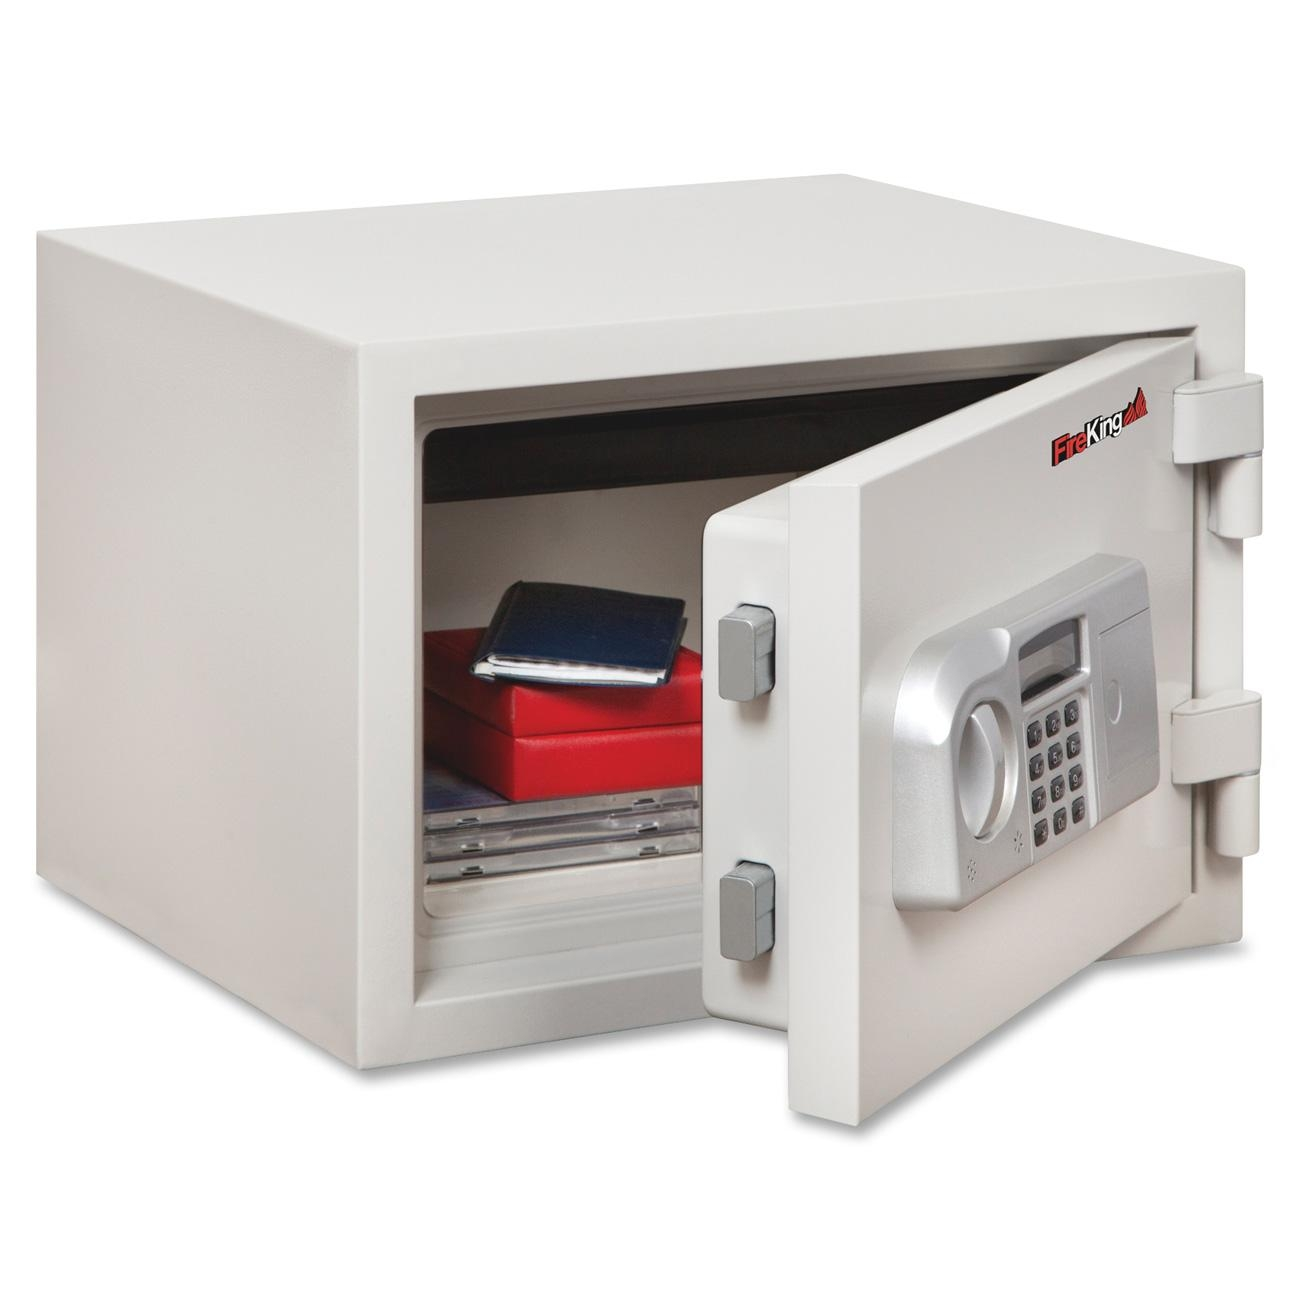 """Fireking .53 Cubic Capacity One-hour Fire Safe - 0.53 Ft - Electronic, Programmable Lock Lock Bolt[s] - 11.8"""" X 16.5"""" X 14"""" - White (KF08121WHE)"""